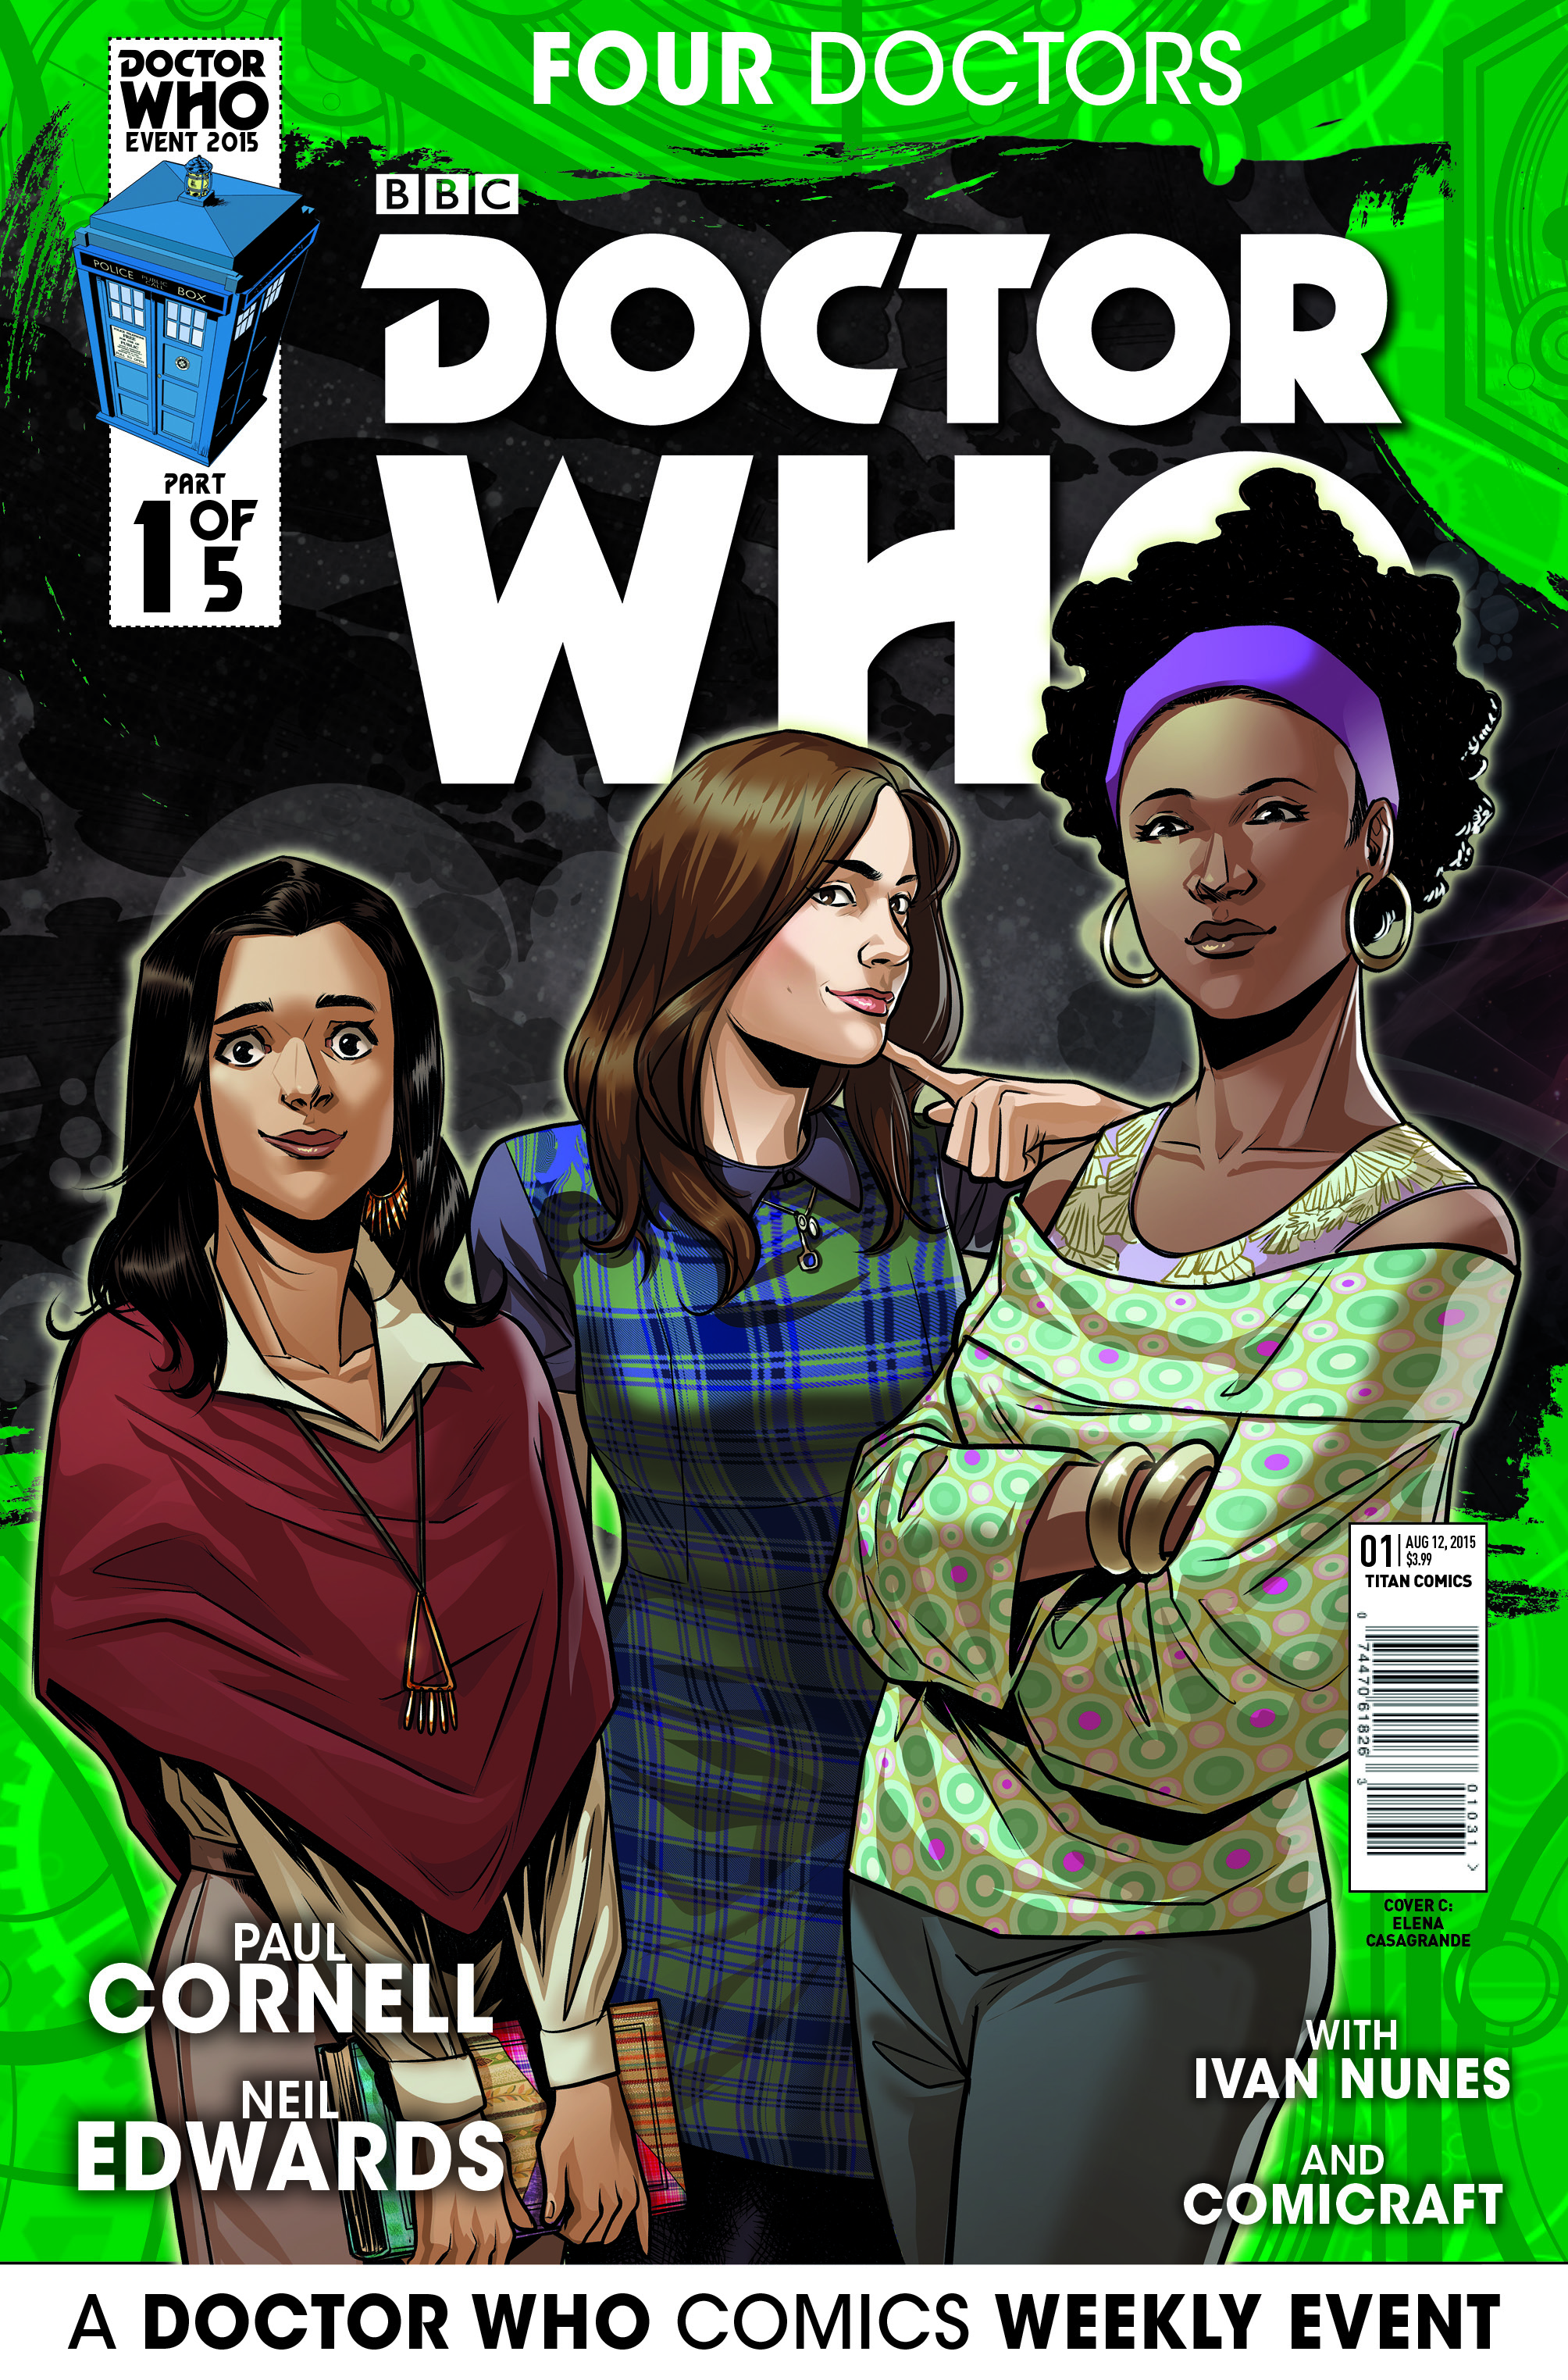 COMPANIONS ART VARIANT COVER BY ELENA CASAGRANDE